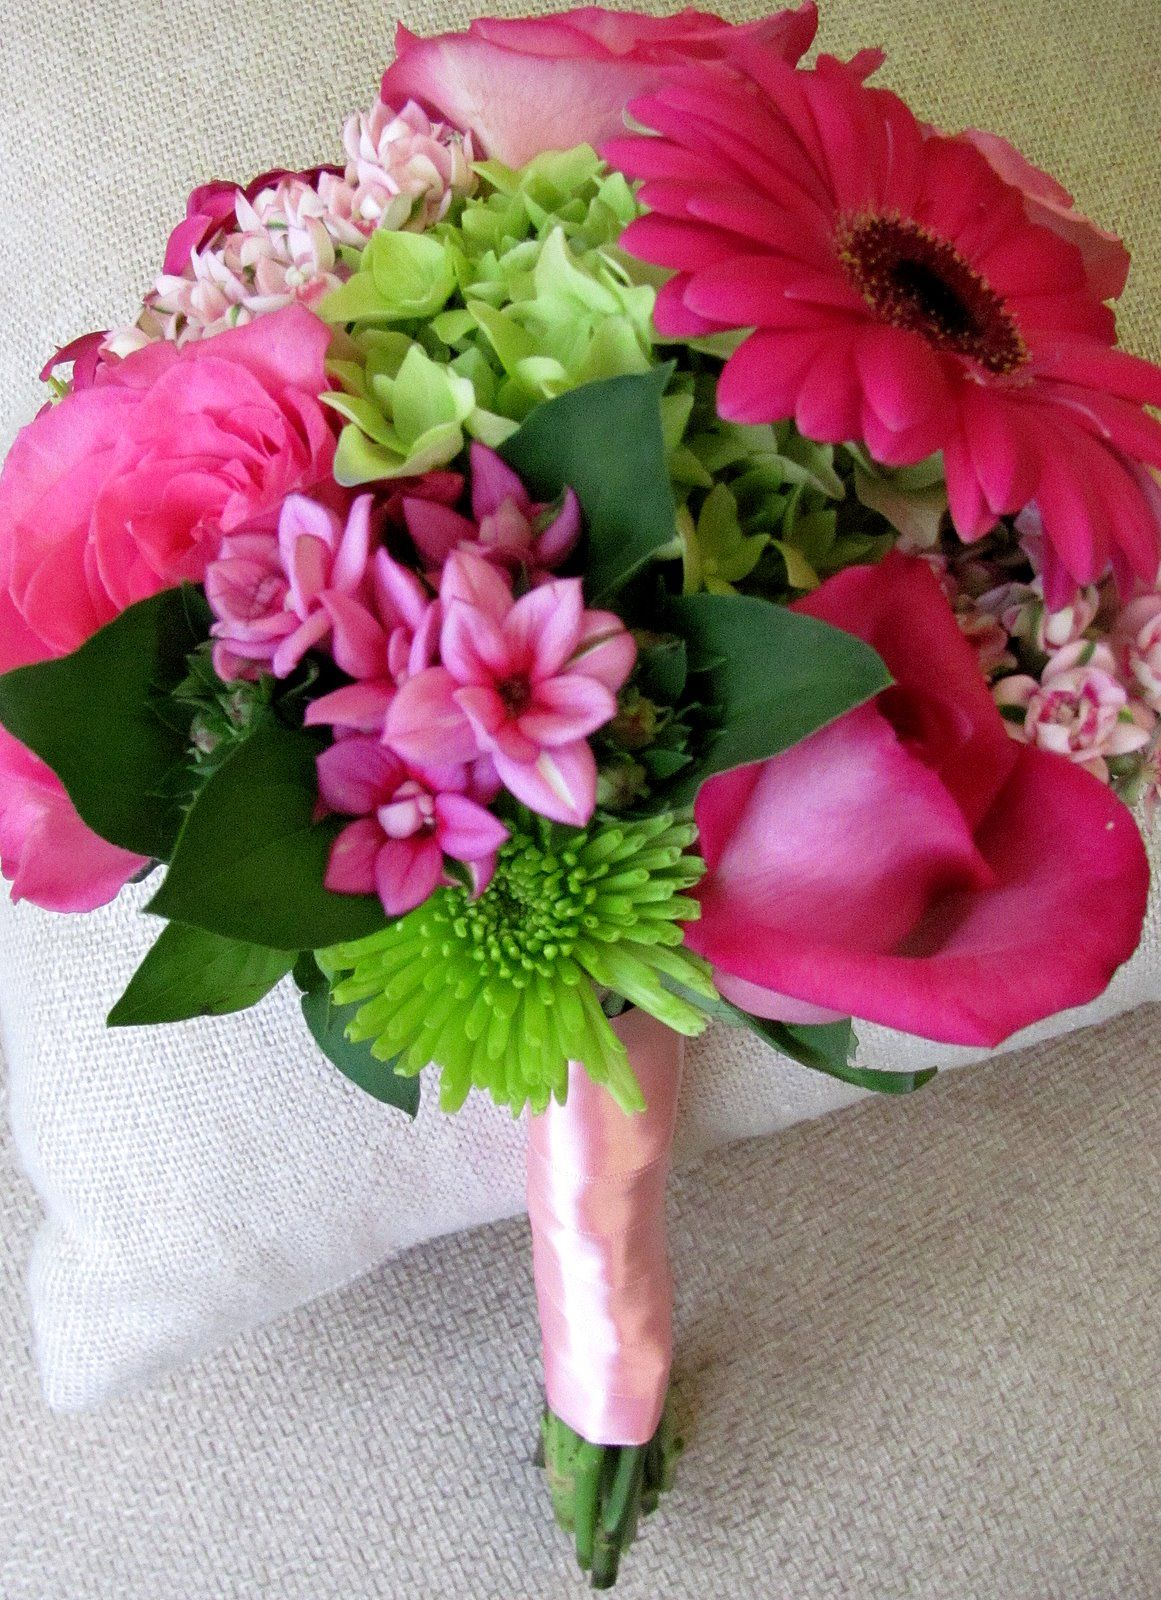 Pink and green flower bouquets for weddings   ... pink bouvardia, a ...